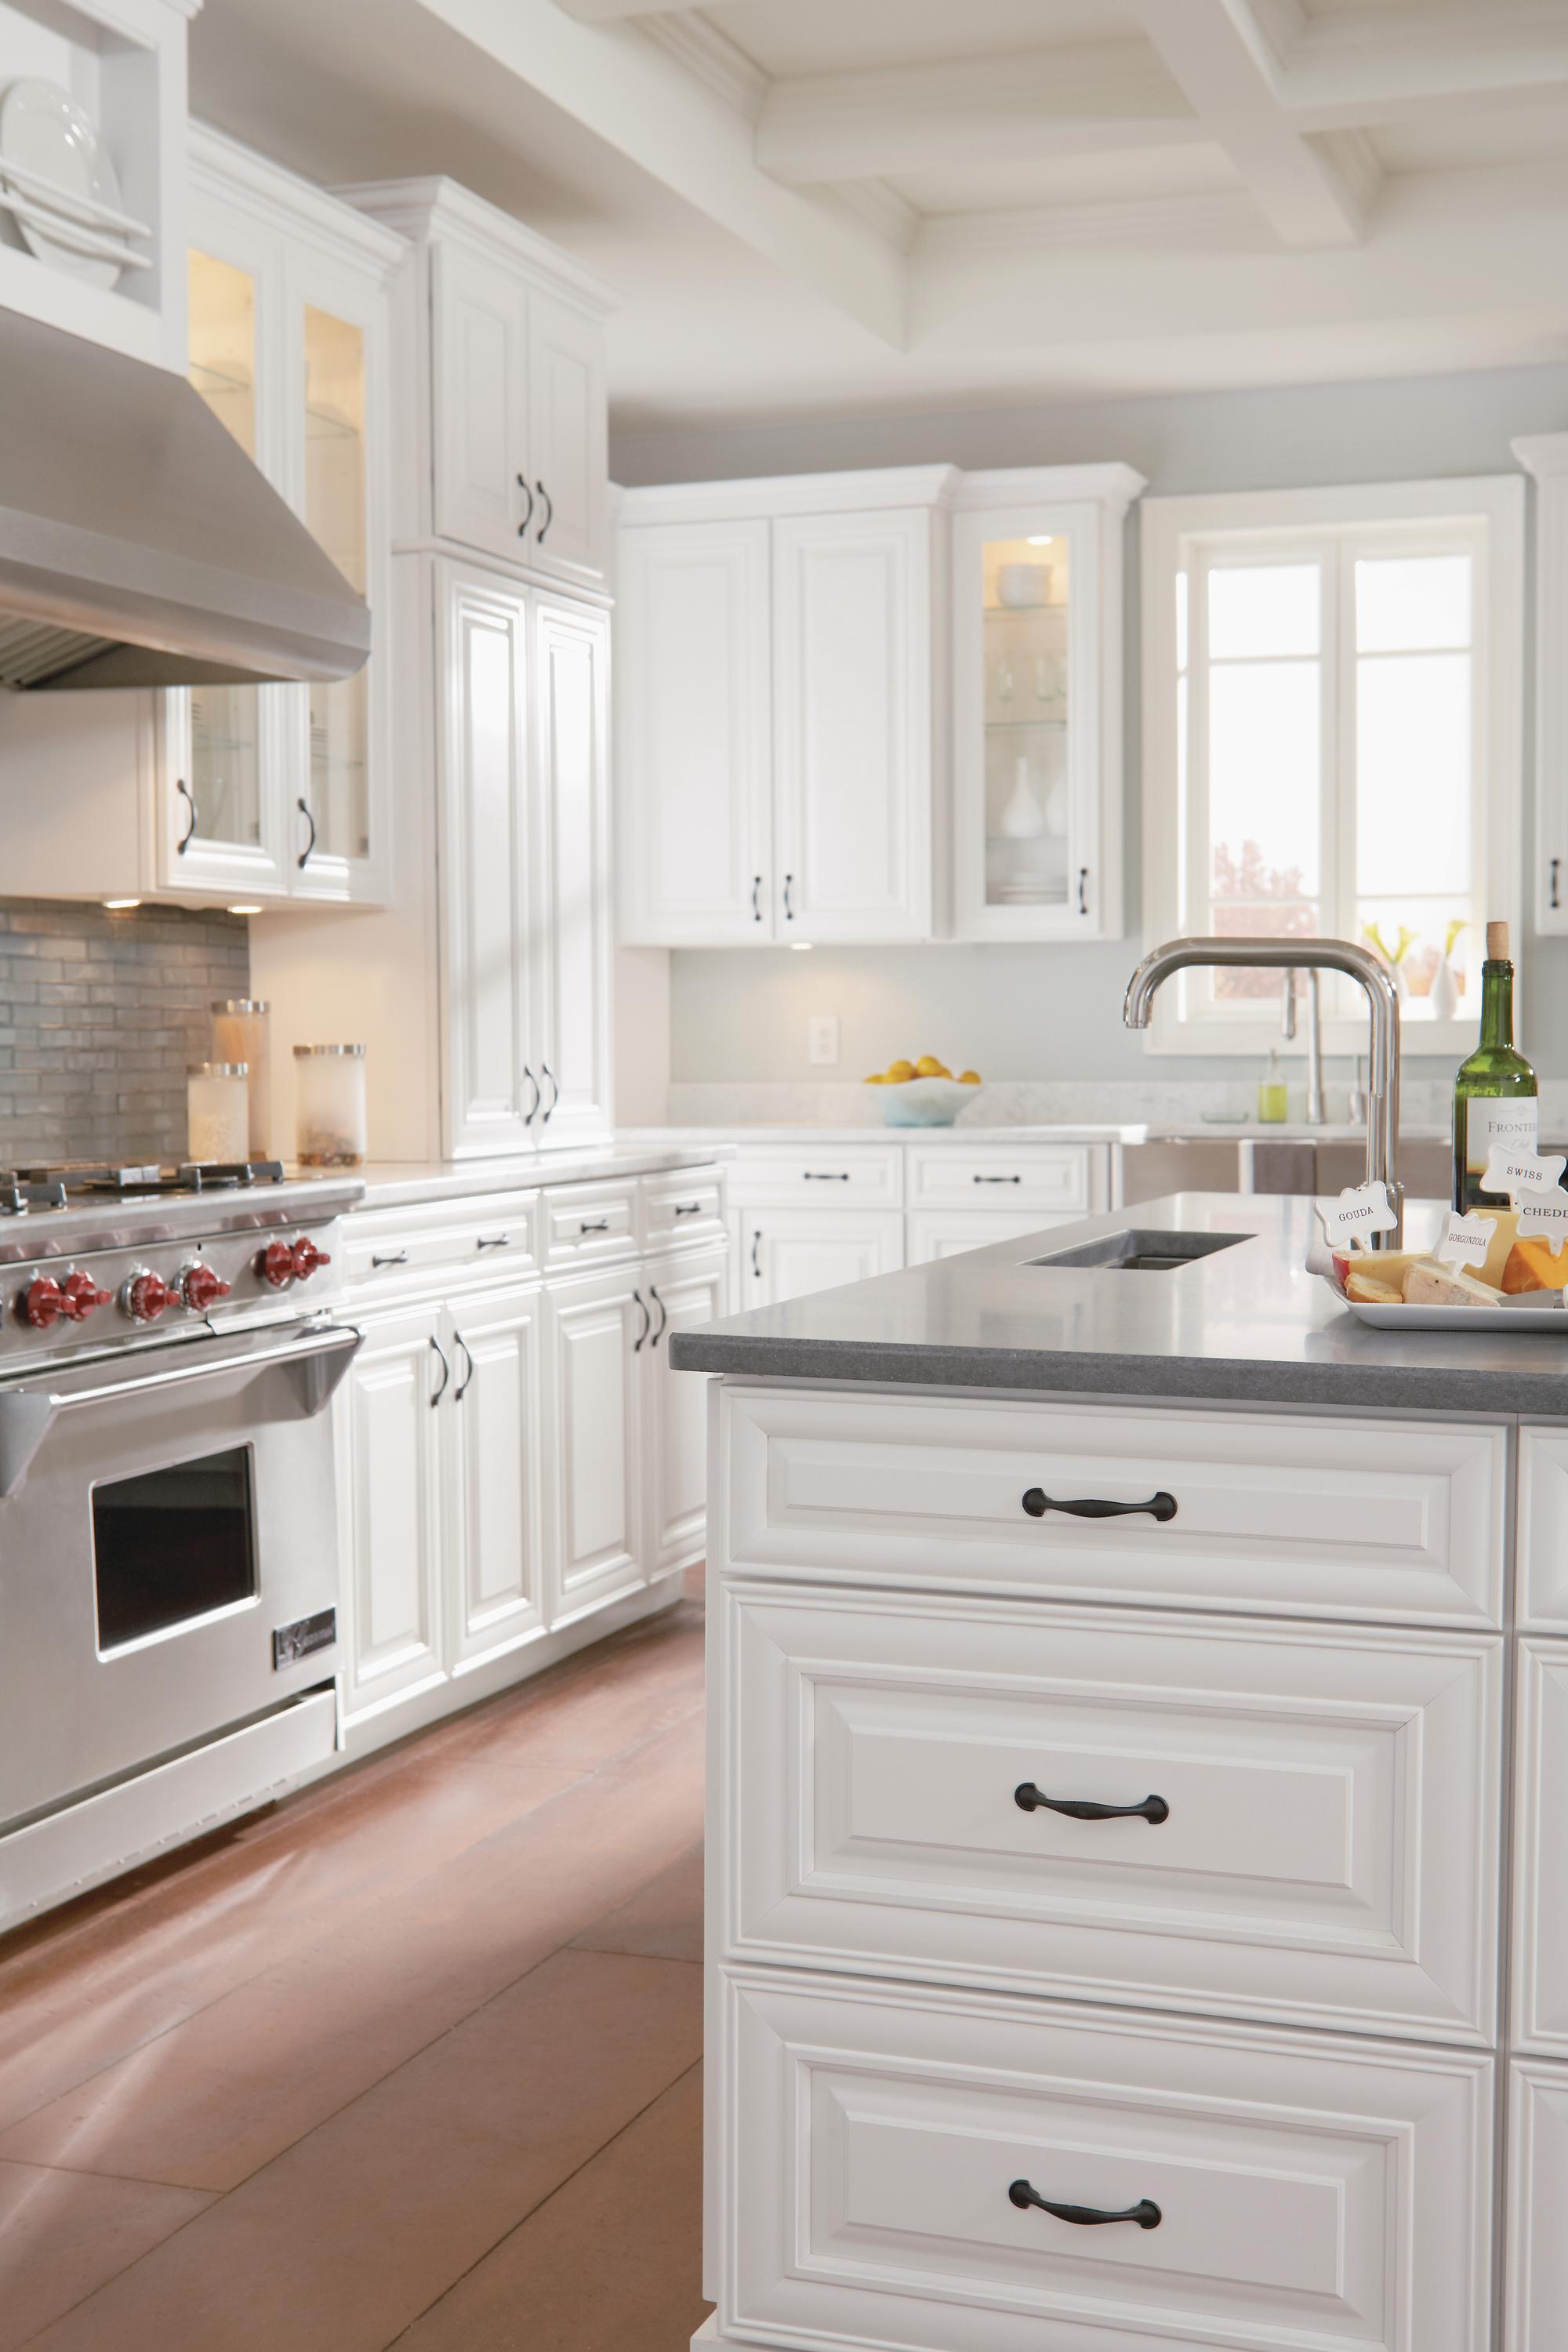 Timberlake Cabinetry Maple Auburn Glaze And Painted Maple